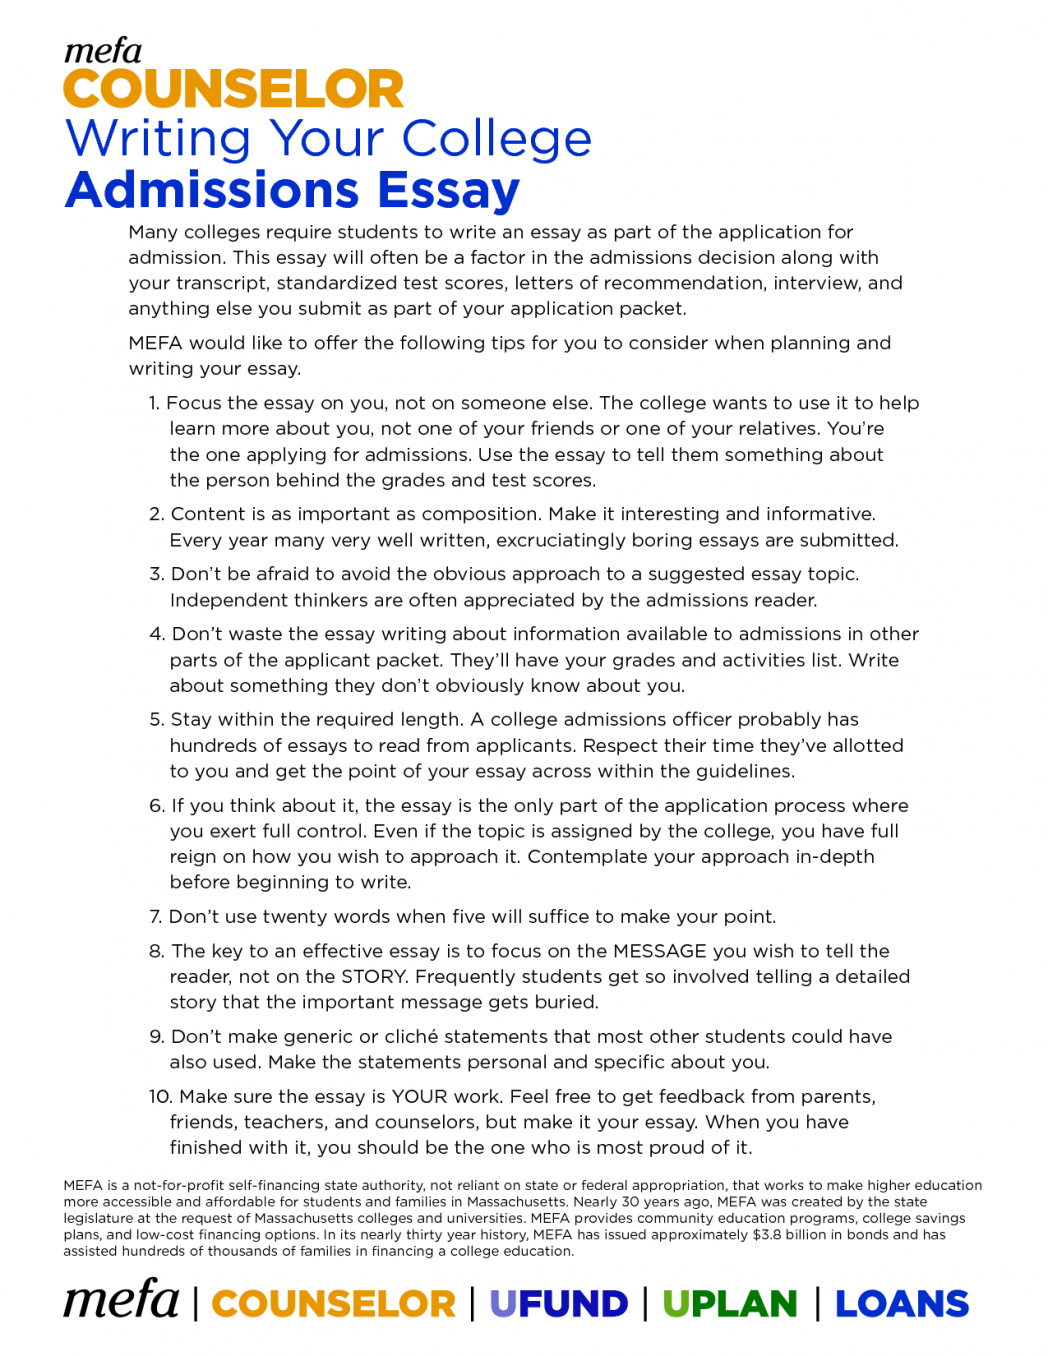 016 Essay Example College Writing Help High School How Many Paragraphs Should Application Wuaom Pages Words Long What About Formatted In Mla Format 1048x1356 Are An Unforgettable Argumentative There Full